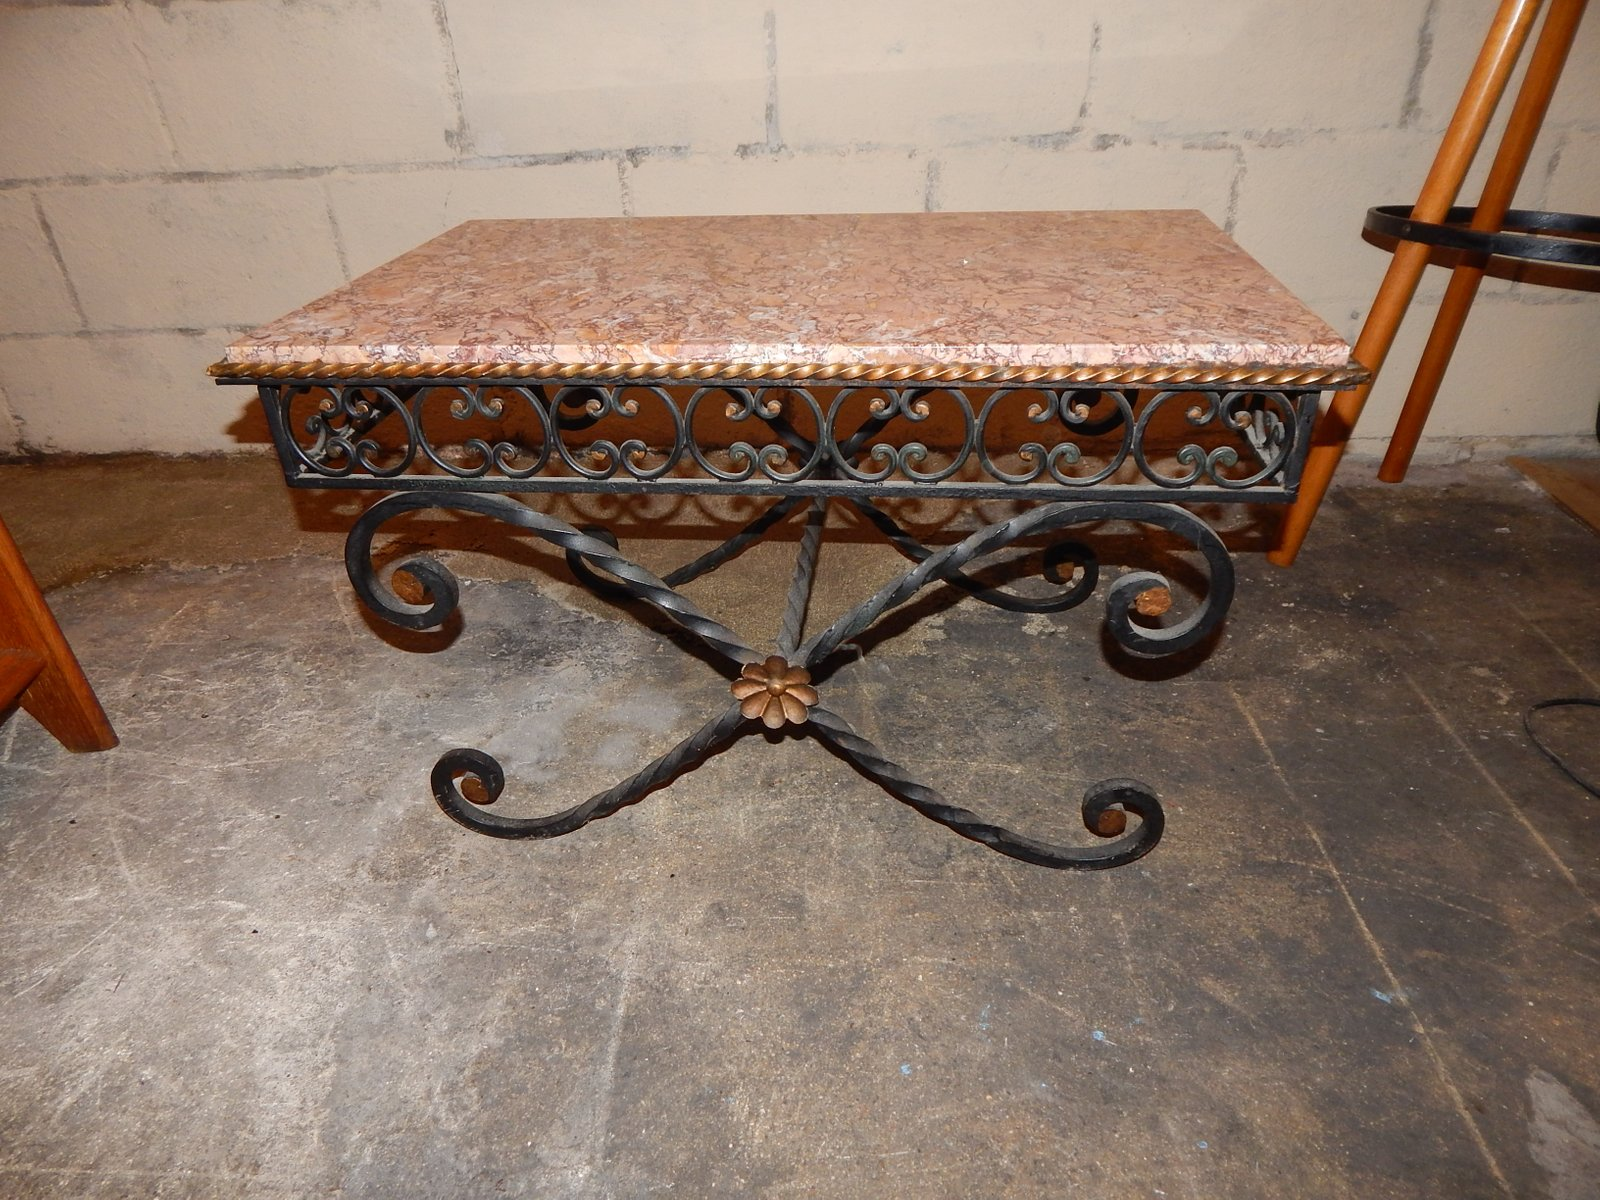 Antique wrought iron table - Vintage Wrought Iron Marble Coffee Table 1930s